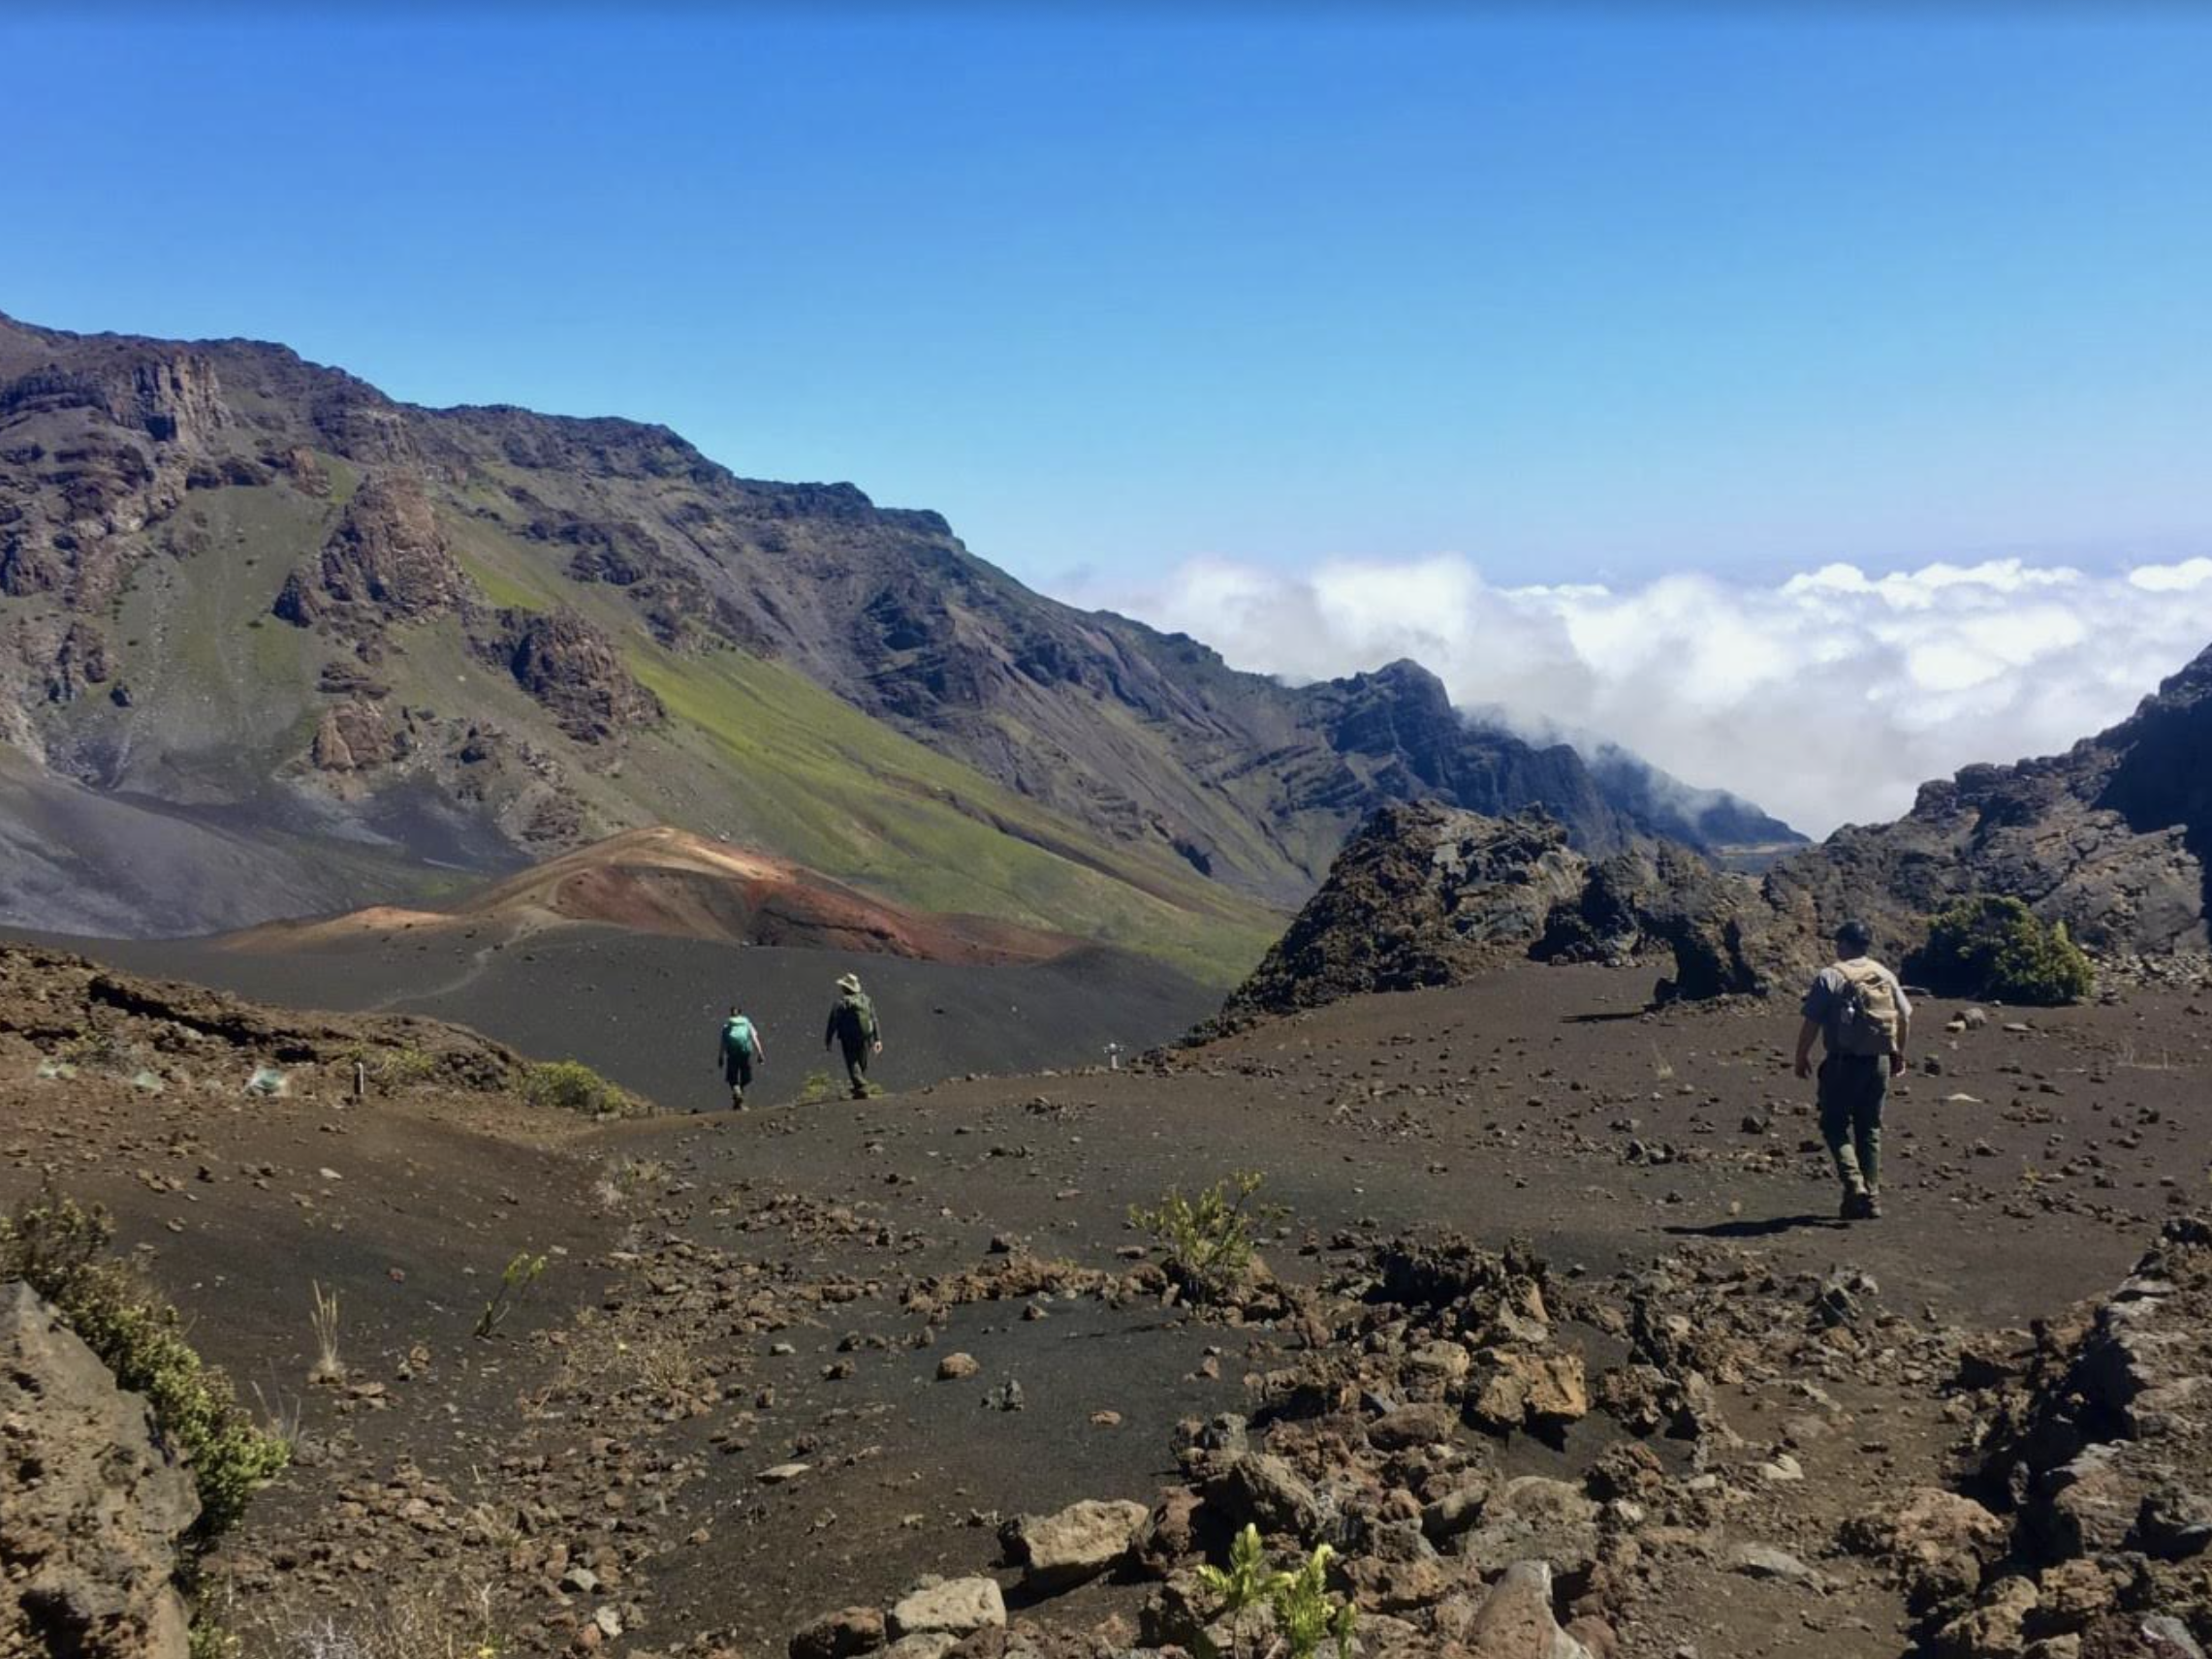 Haleakalā Hosts 319,147 Visitors in 2020, Down 68%